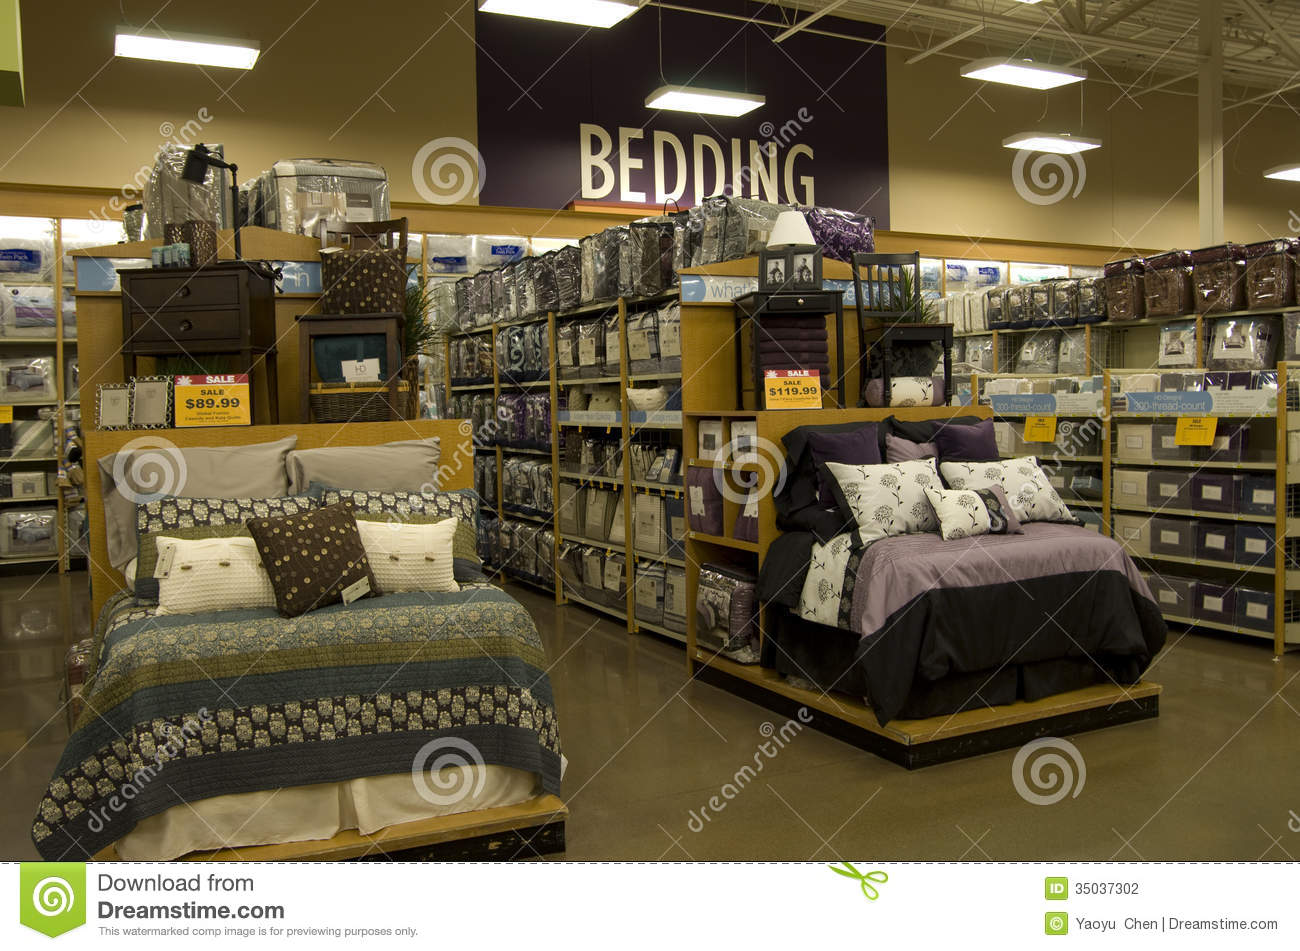 Editorial Stock Photo  Download Home Goods Store. Home Goods Store Editorial Photography   Image  35037302